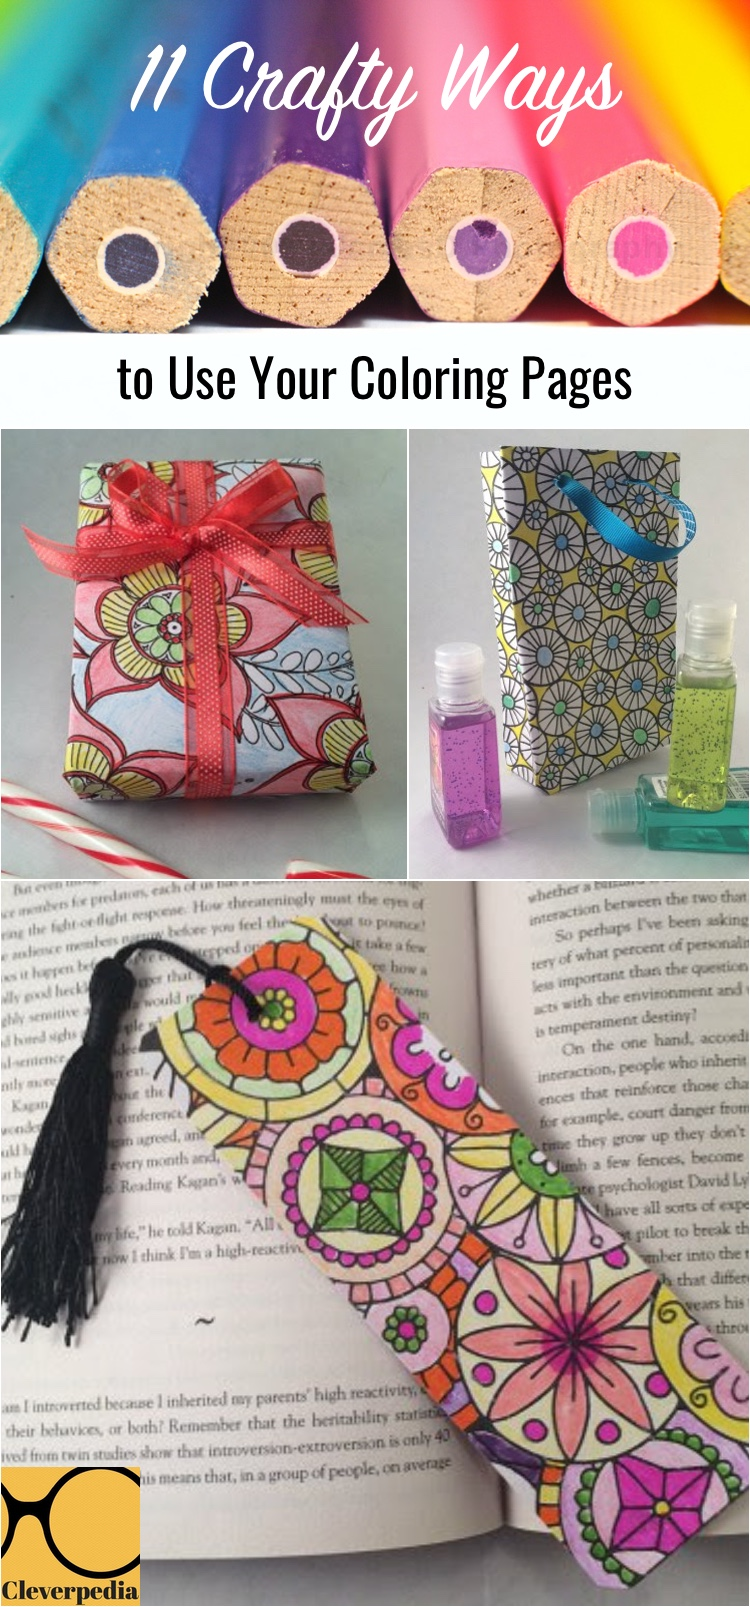 11 Crafty Ways to Use Your Coloring Pages